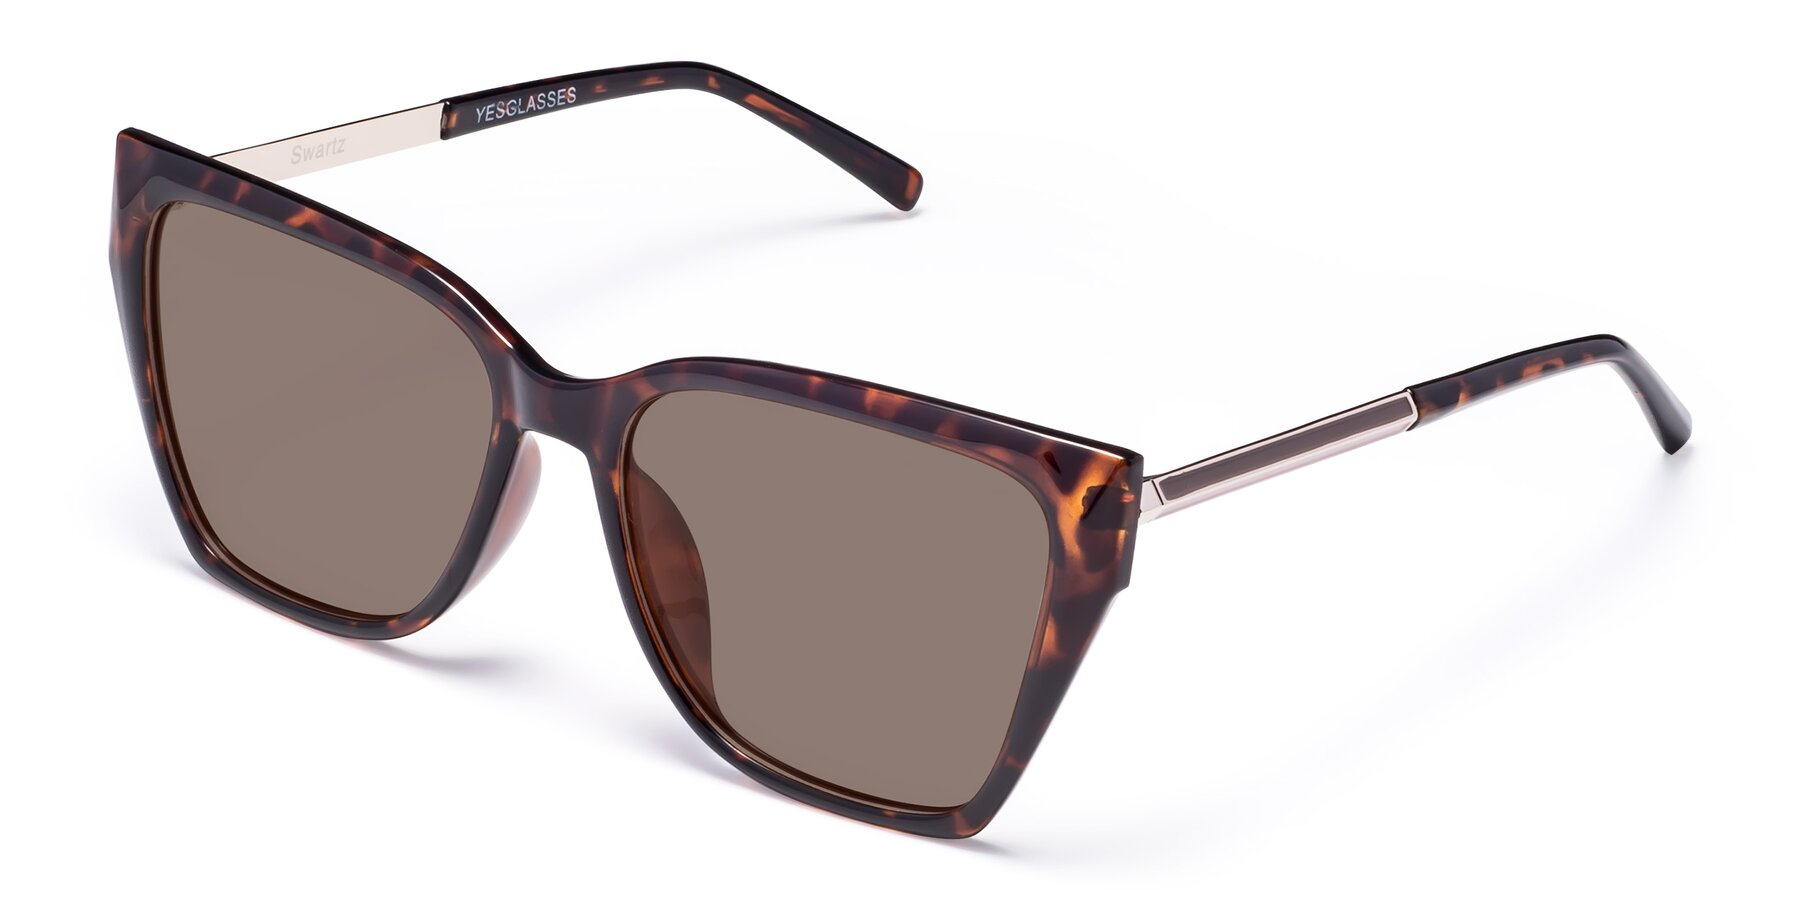 Angle of Swartz in Tortoise with Medium Brown Tinted Lenses